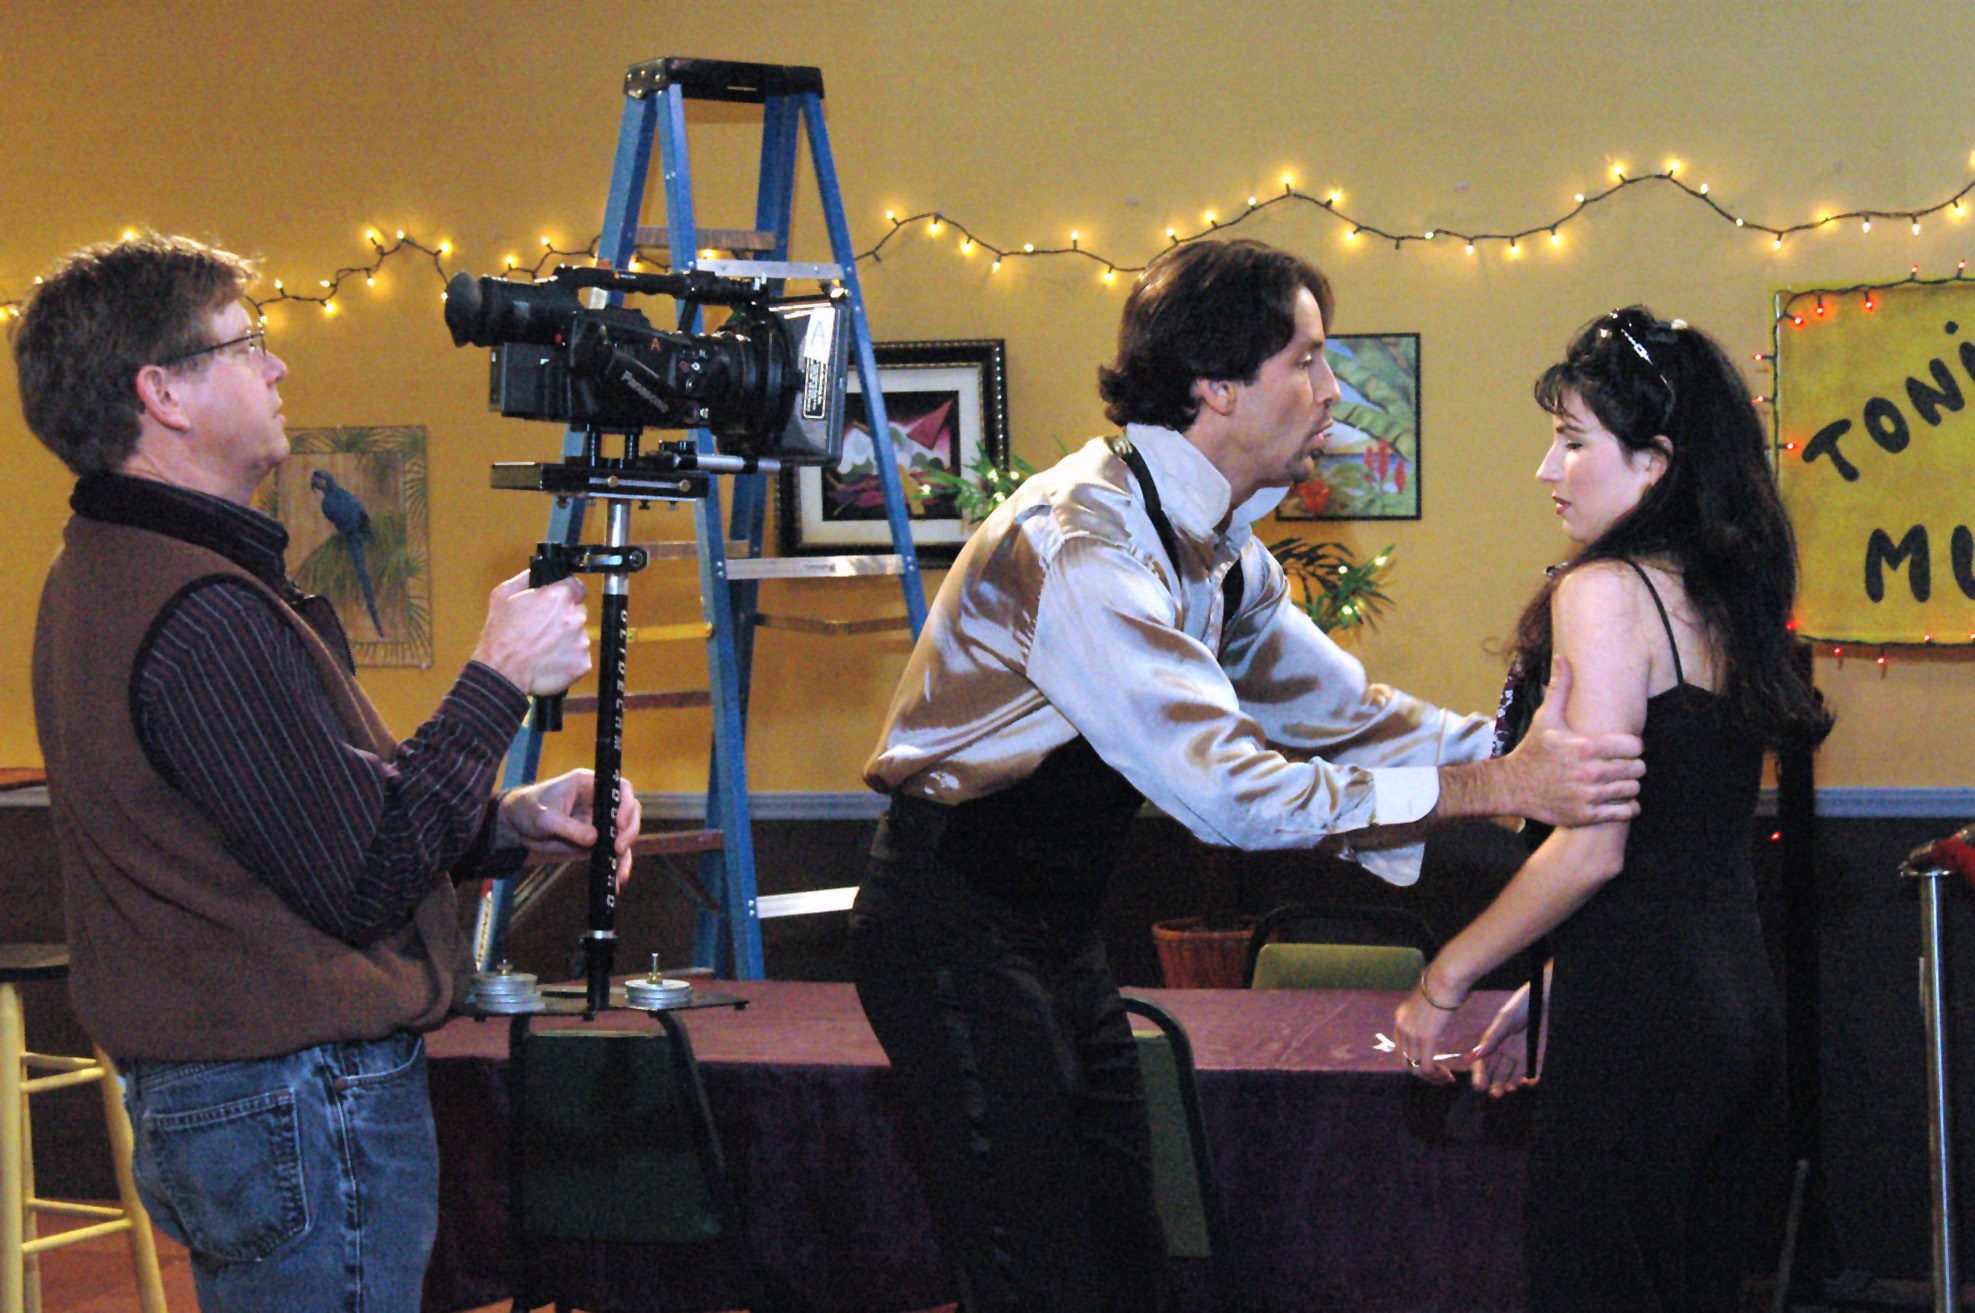 On the set of Nuestro Barrio (Our Neighborhood), a telenovela filmed and set in the United States. No longer exclusively the province of Latin America, U.S. telenovelas reflect the issues facing the Hispanic population in the United States.